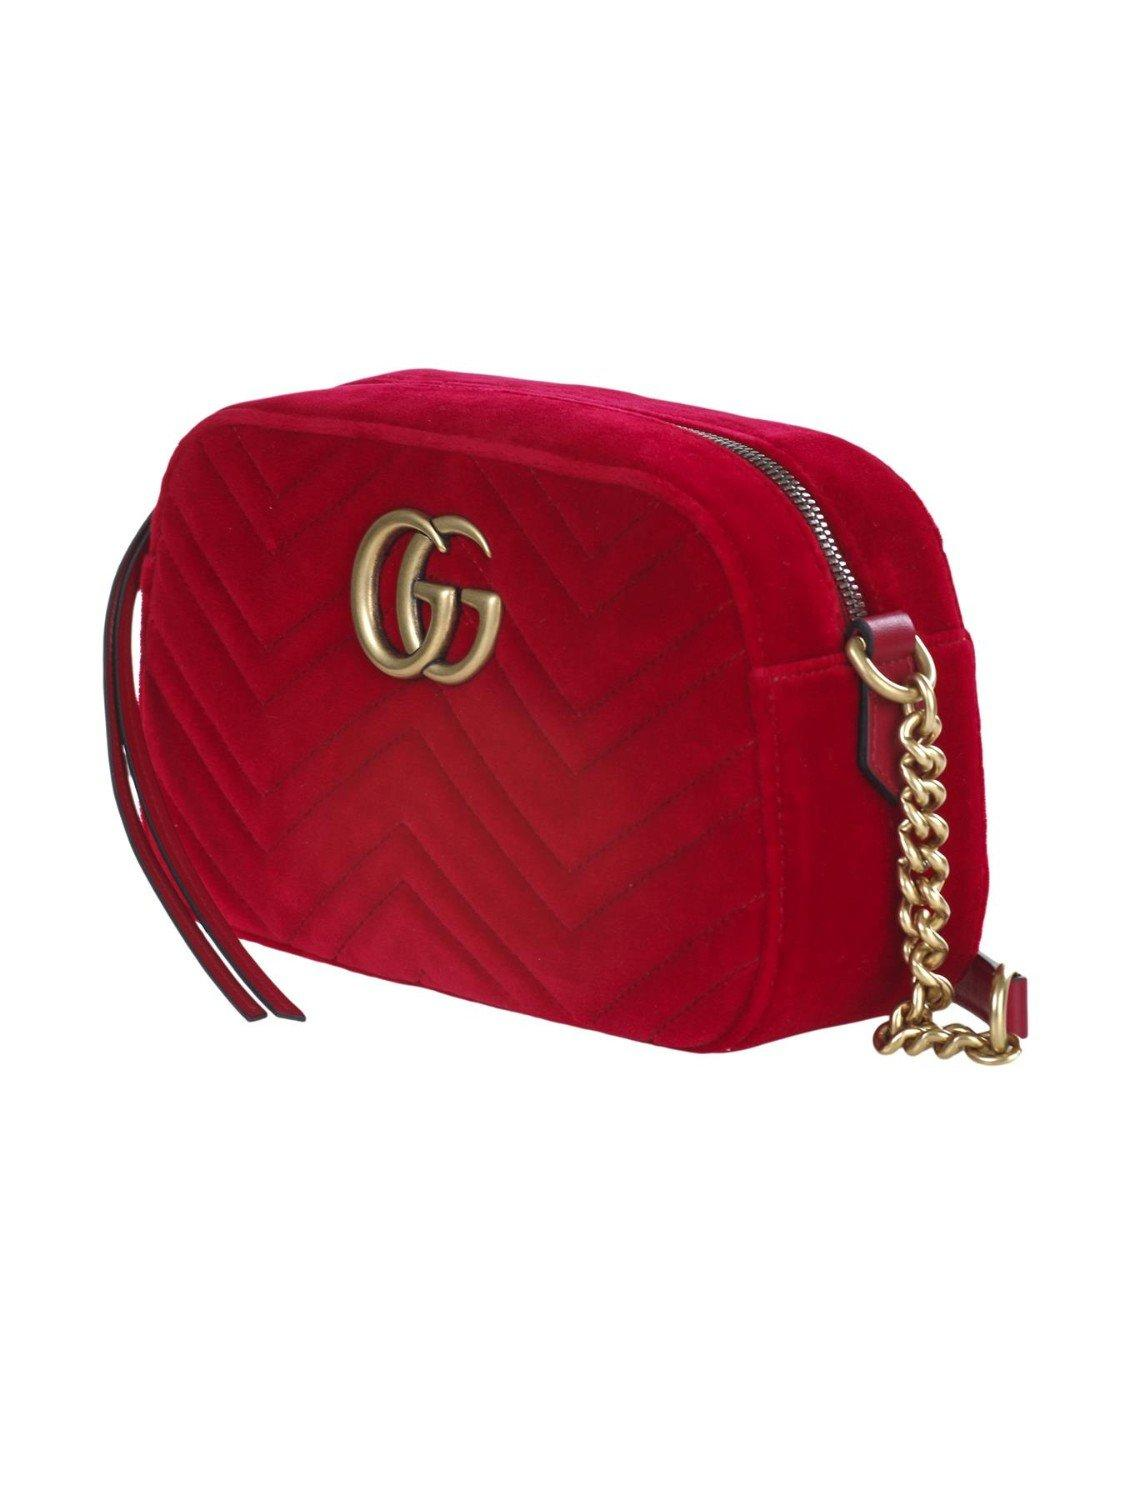 8045e5d8e Gucci - Red Small Shoulder Bag Gg Marmont In Soft Velvet Matelassé With Chevron  Pattern -. View fullscreen